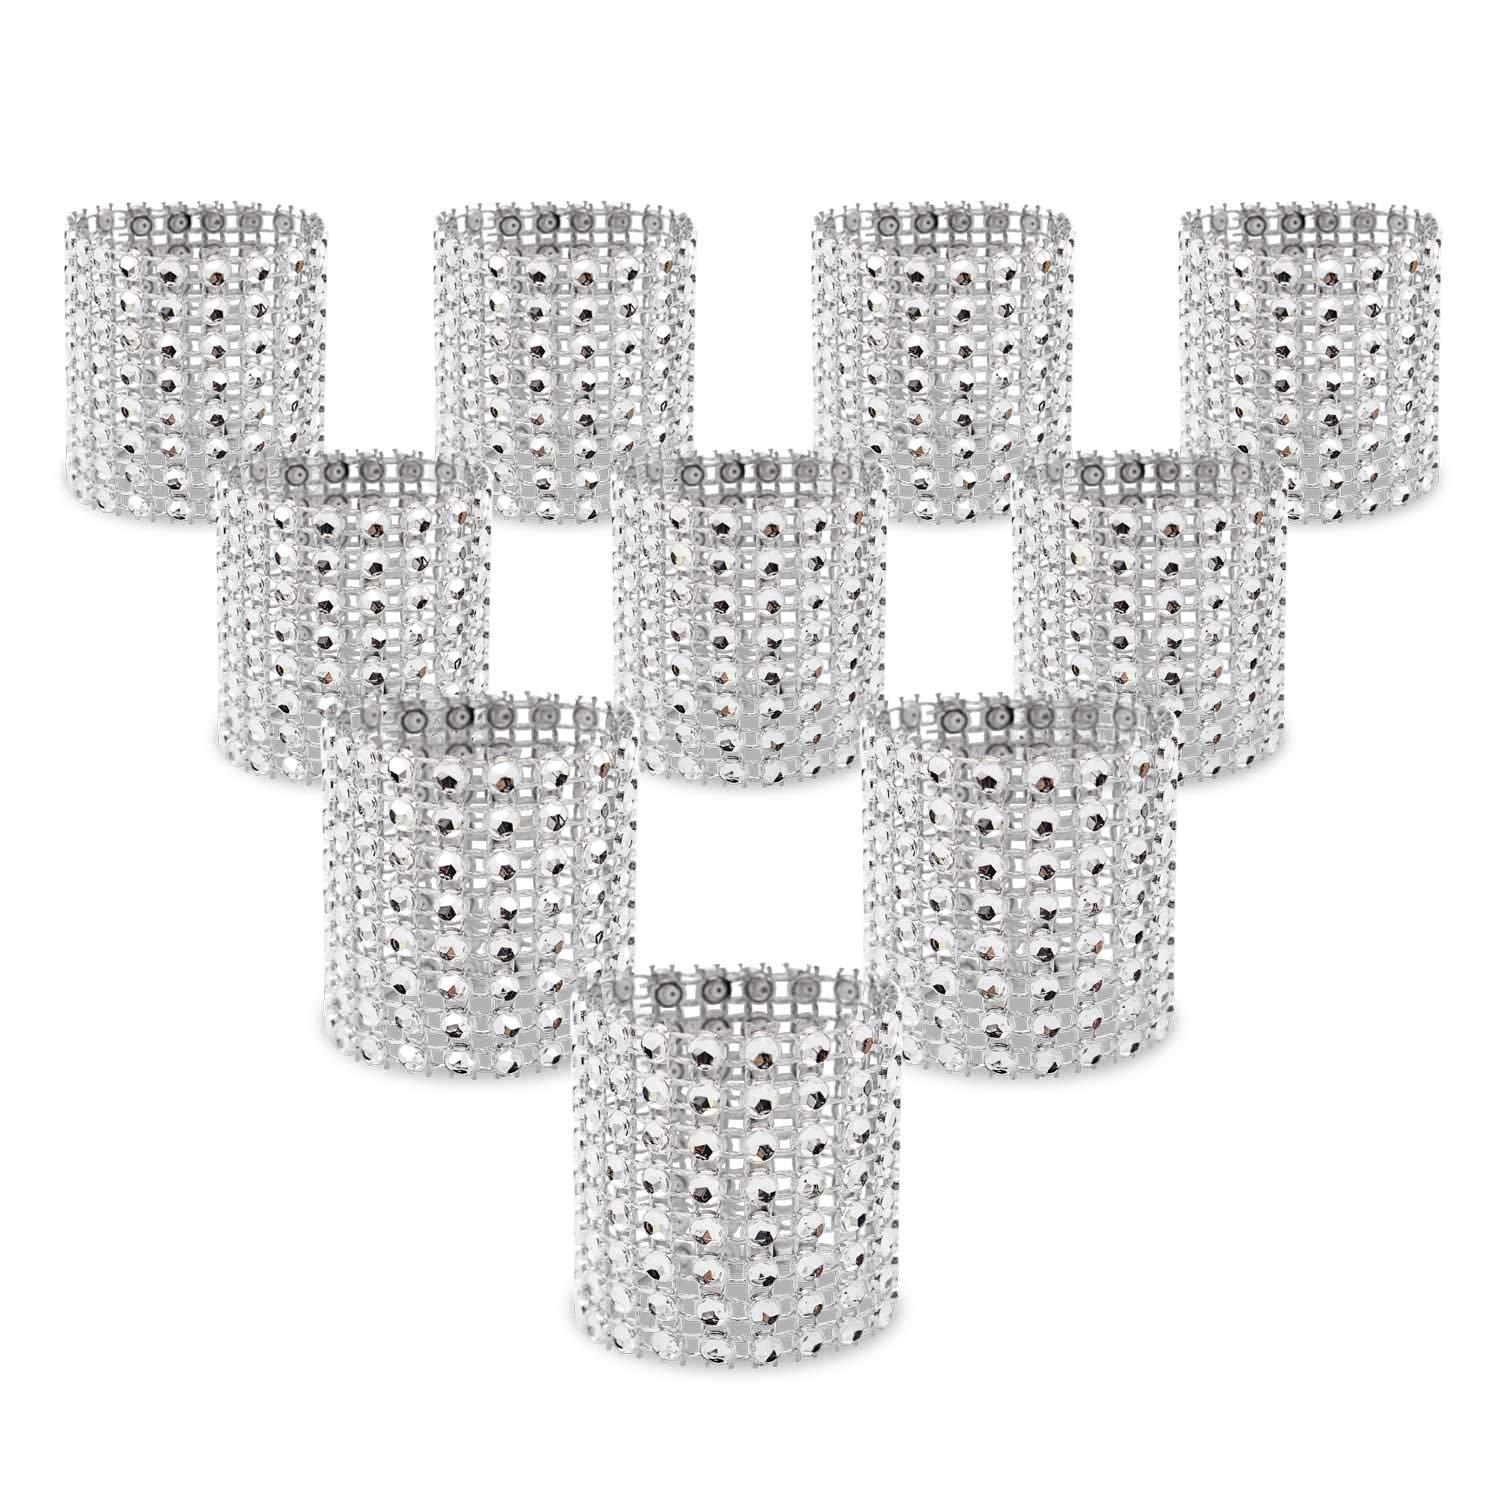 KEIVA Napkin Rings, Pack of 120 Rhinestone Napkin Rings Diamond Adornment for Place Settings, Wedding Receptions, Dinner or Holiday Parties, Family Gatherings (120, Silver) by KEIVA